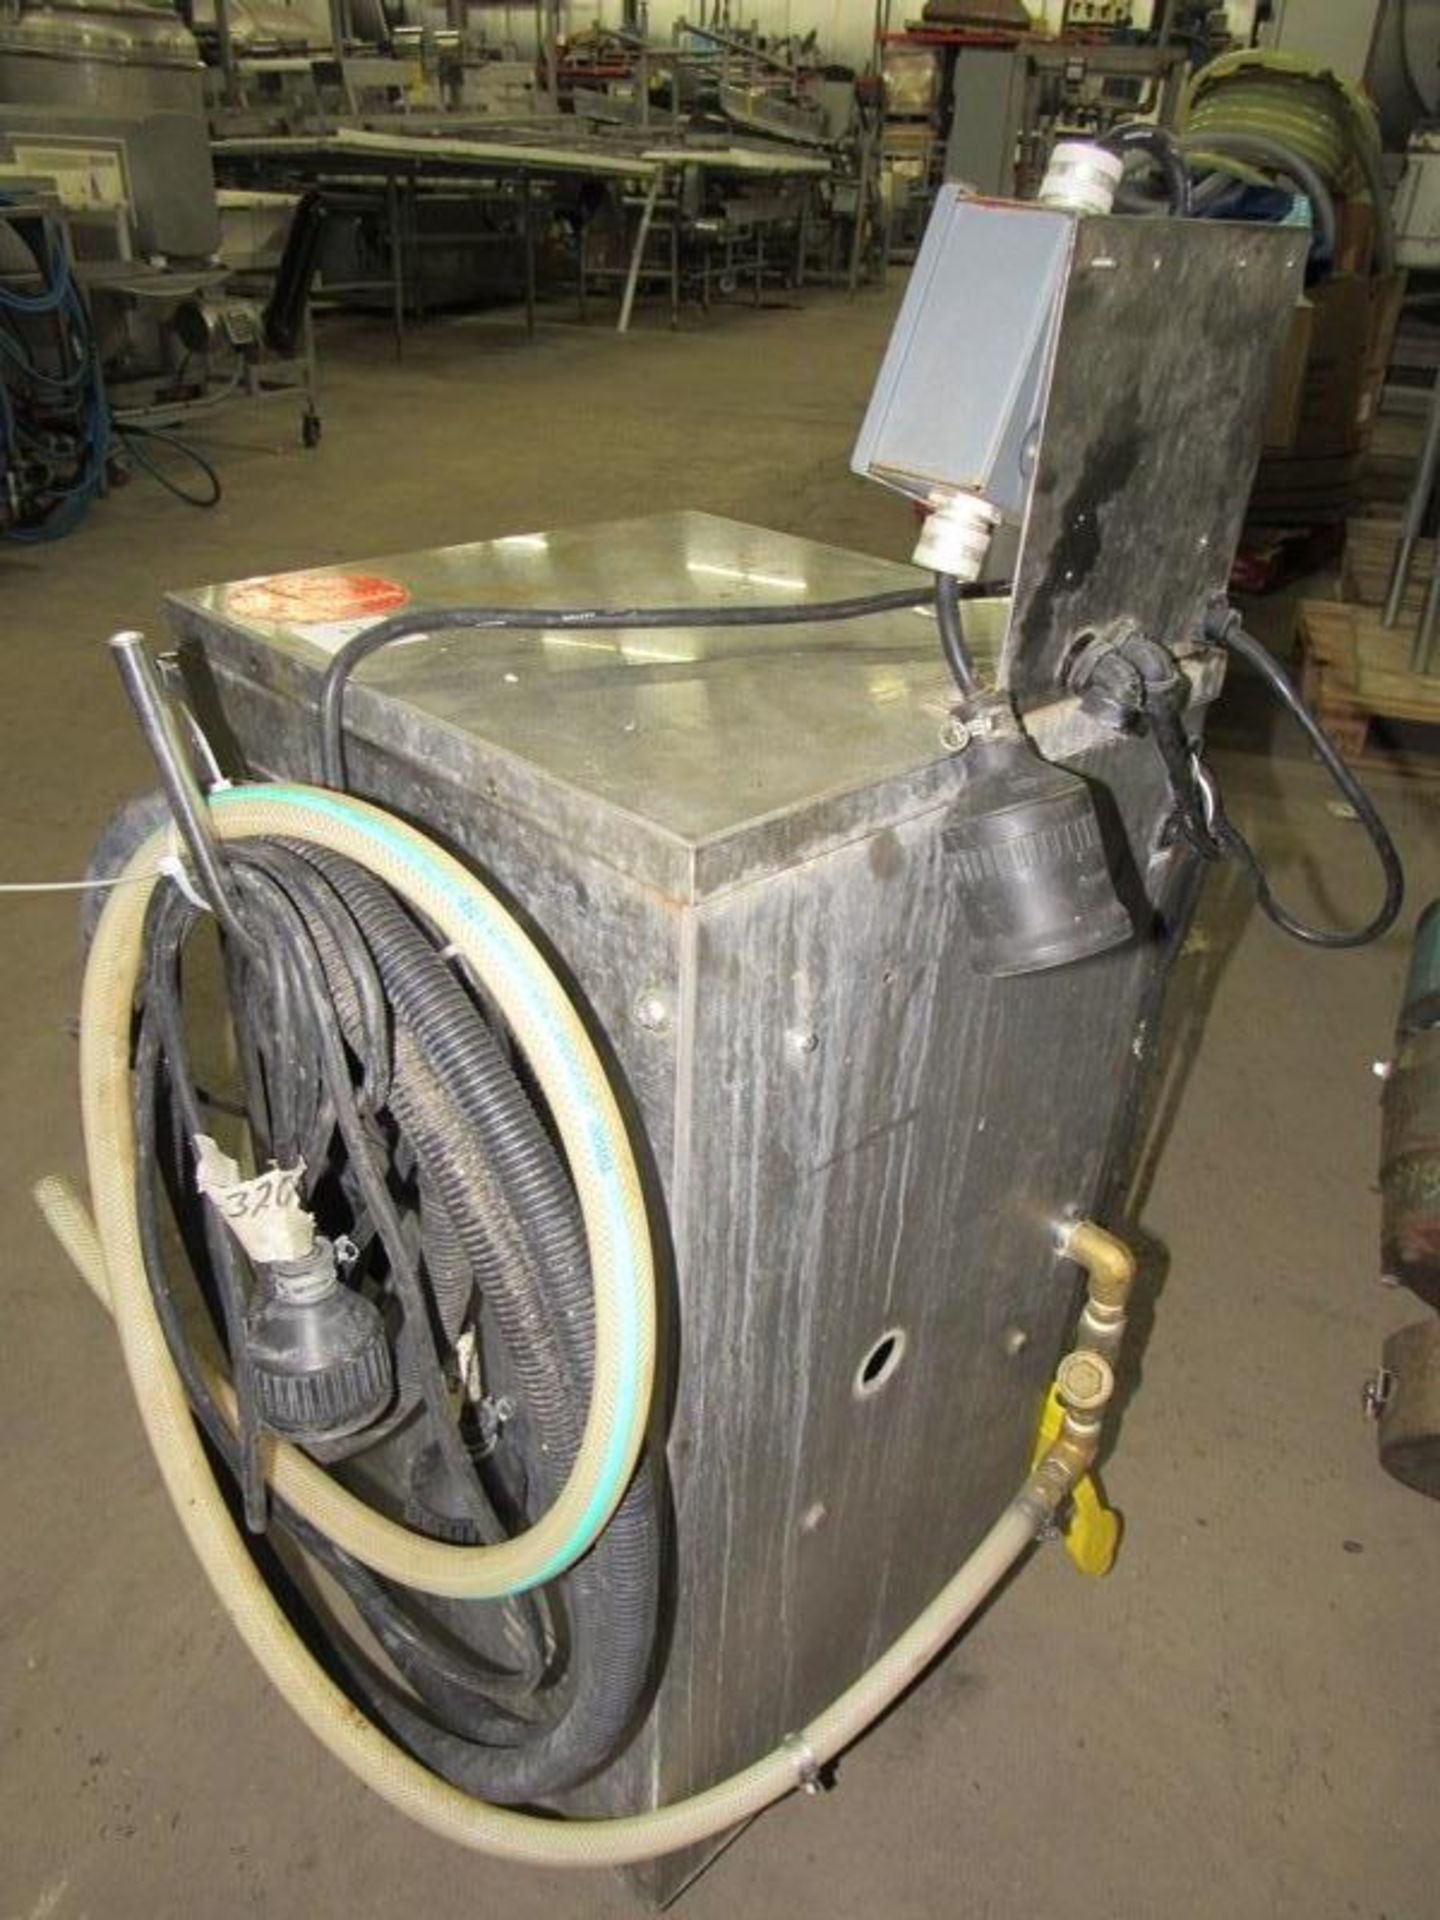 Lot 1 - Showa Jet Complete Meat Washing System Including: Showa Jet Mdl. LK4016-98 Stainless Steel Wash